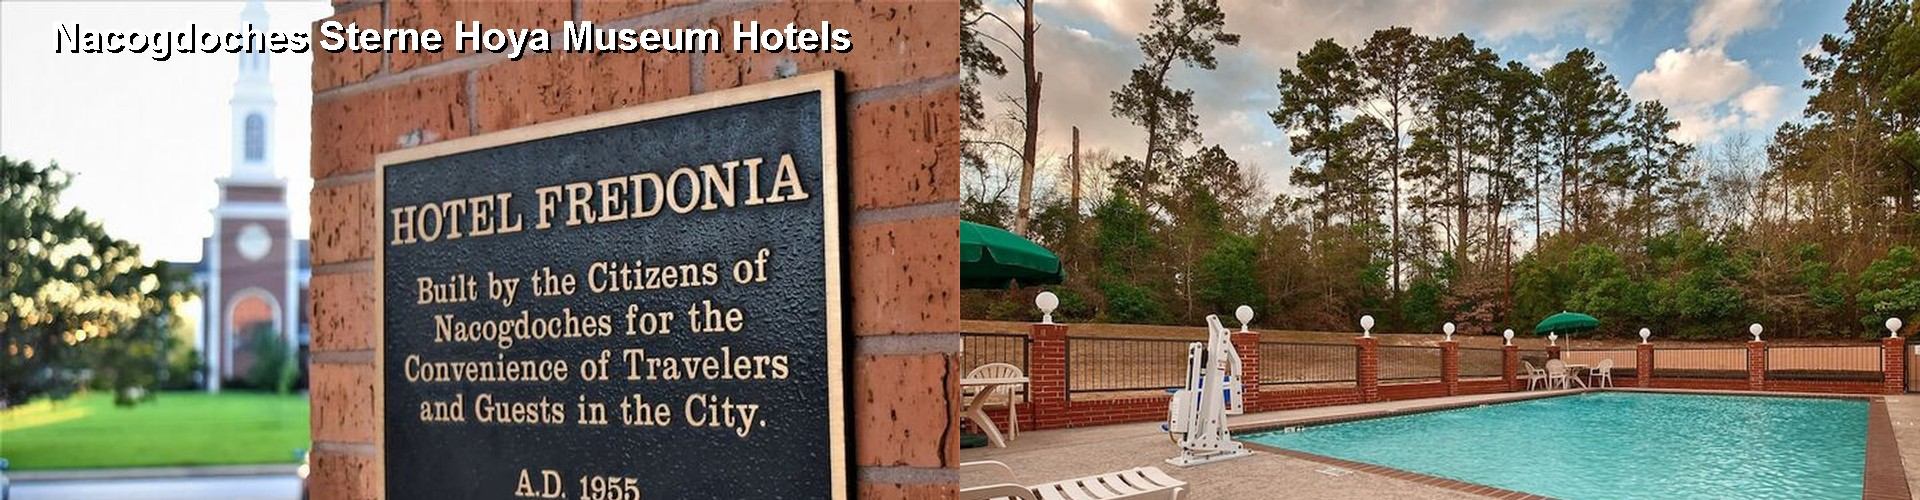 5 Best Hotels near Nacogdoches Sterne Hoya Museum